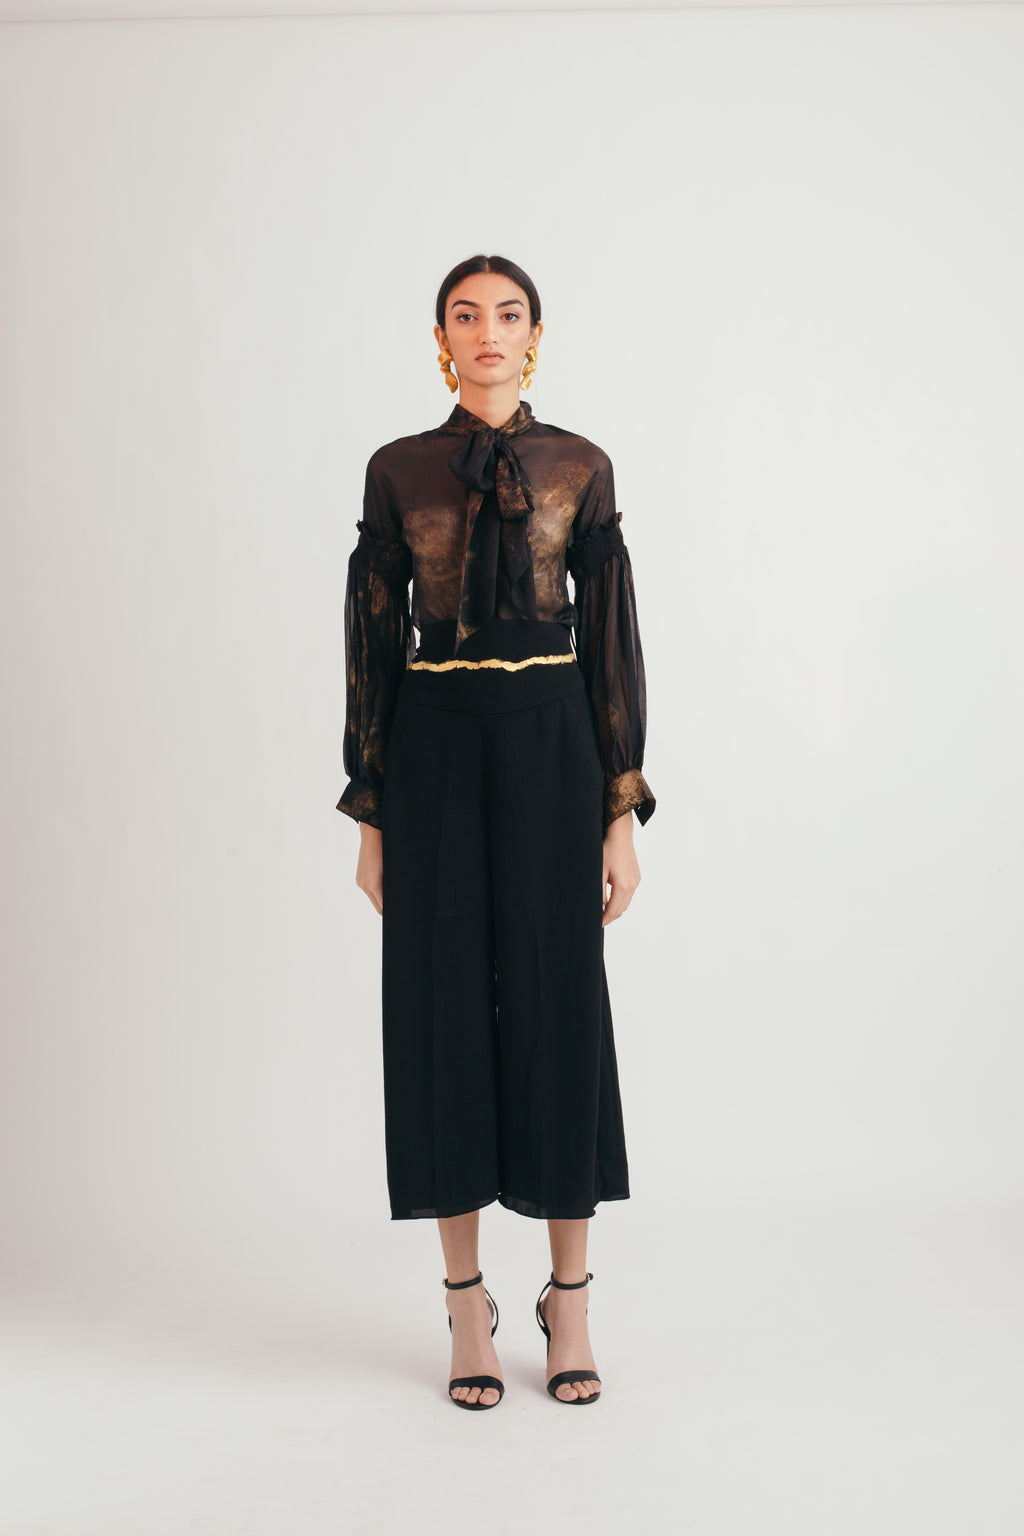 The Broken Beam Culottes - Bhaavya Bhatnagar